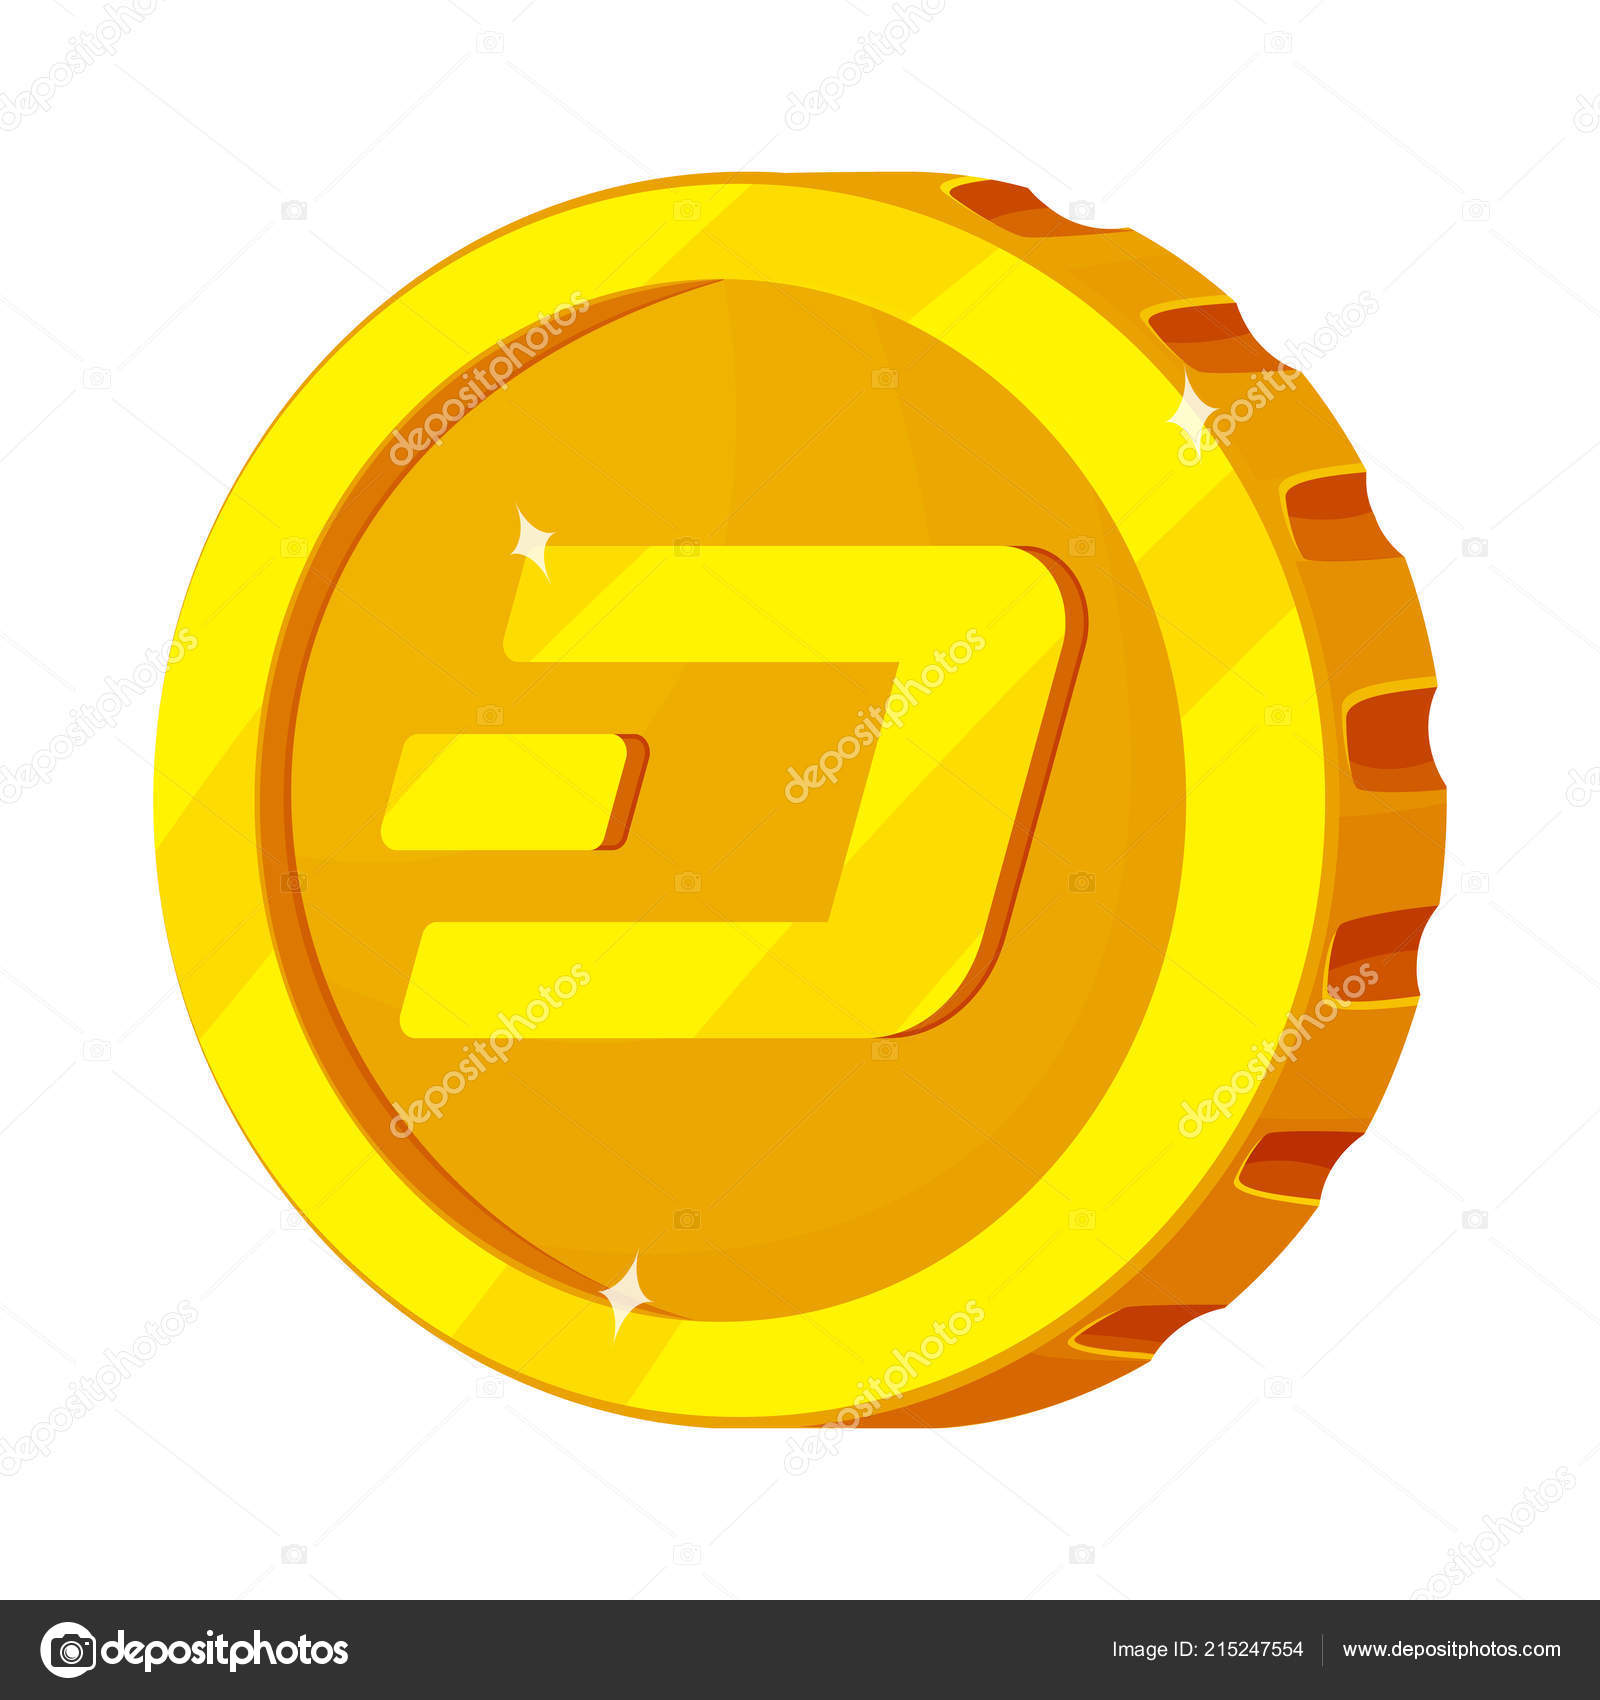 Isolated Object Of Cryptocurrency And Coin Logo Collection Of